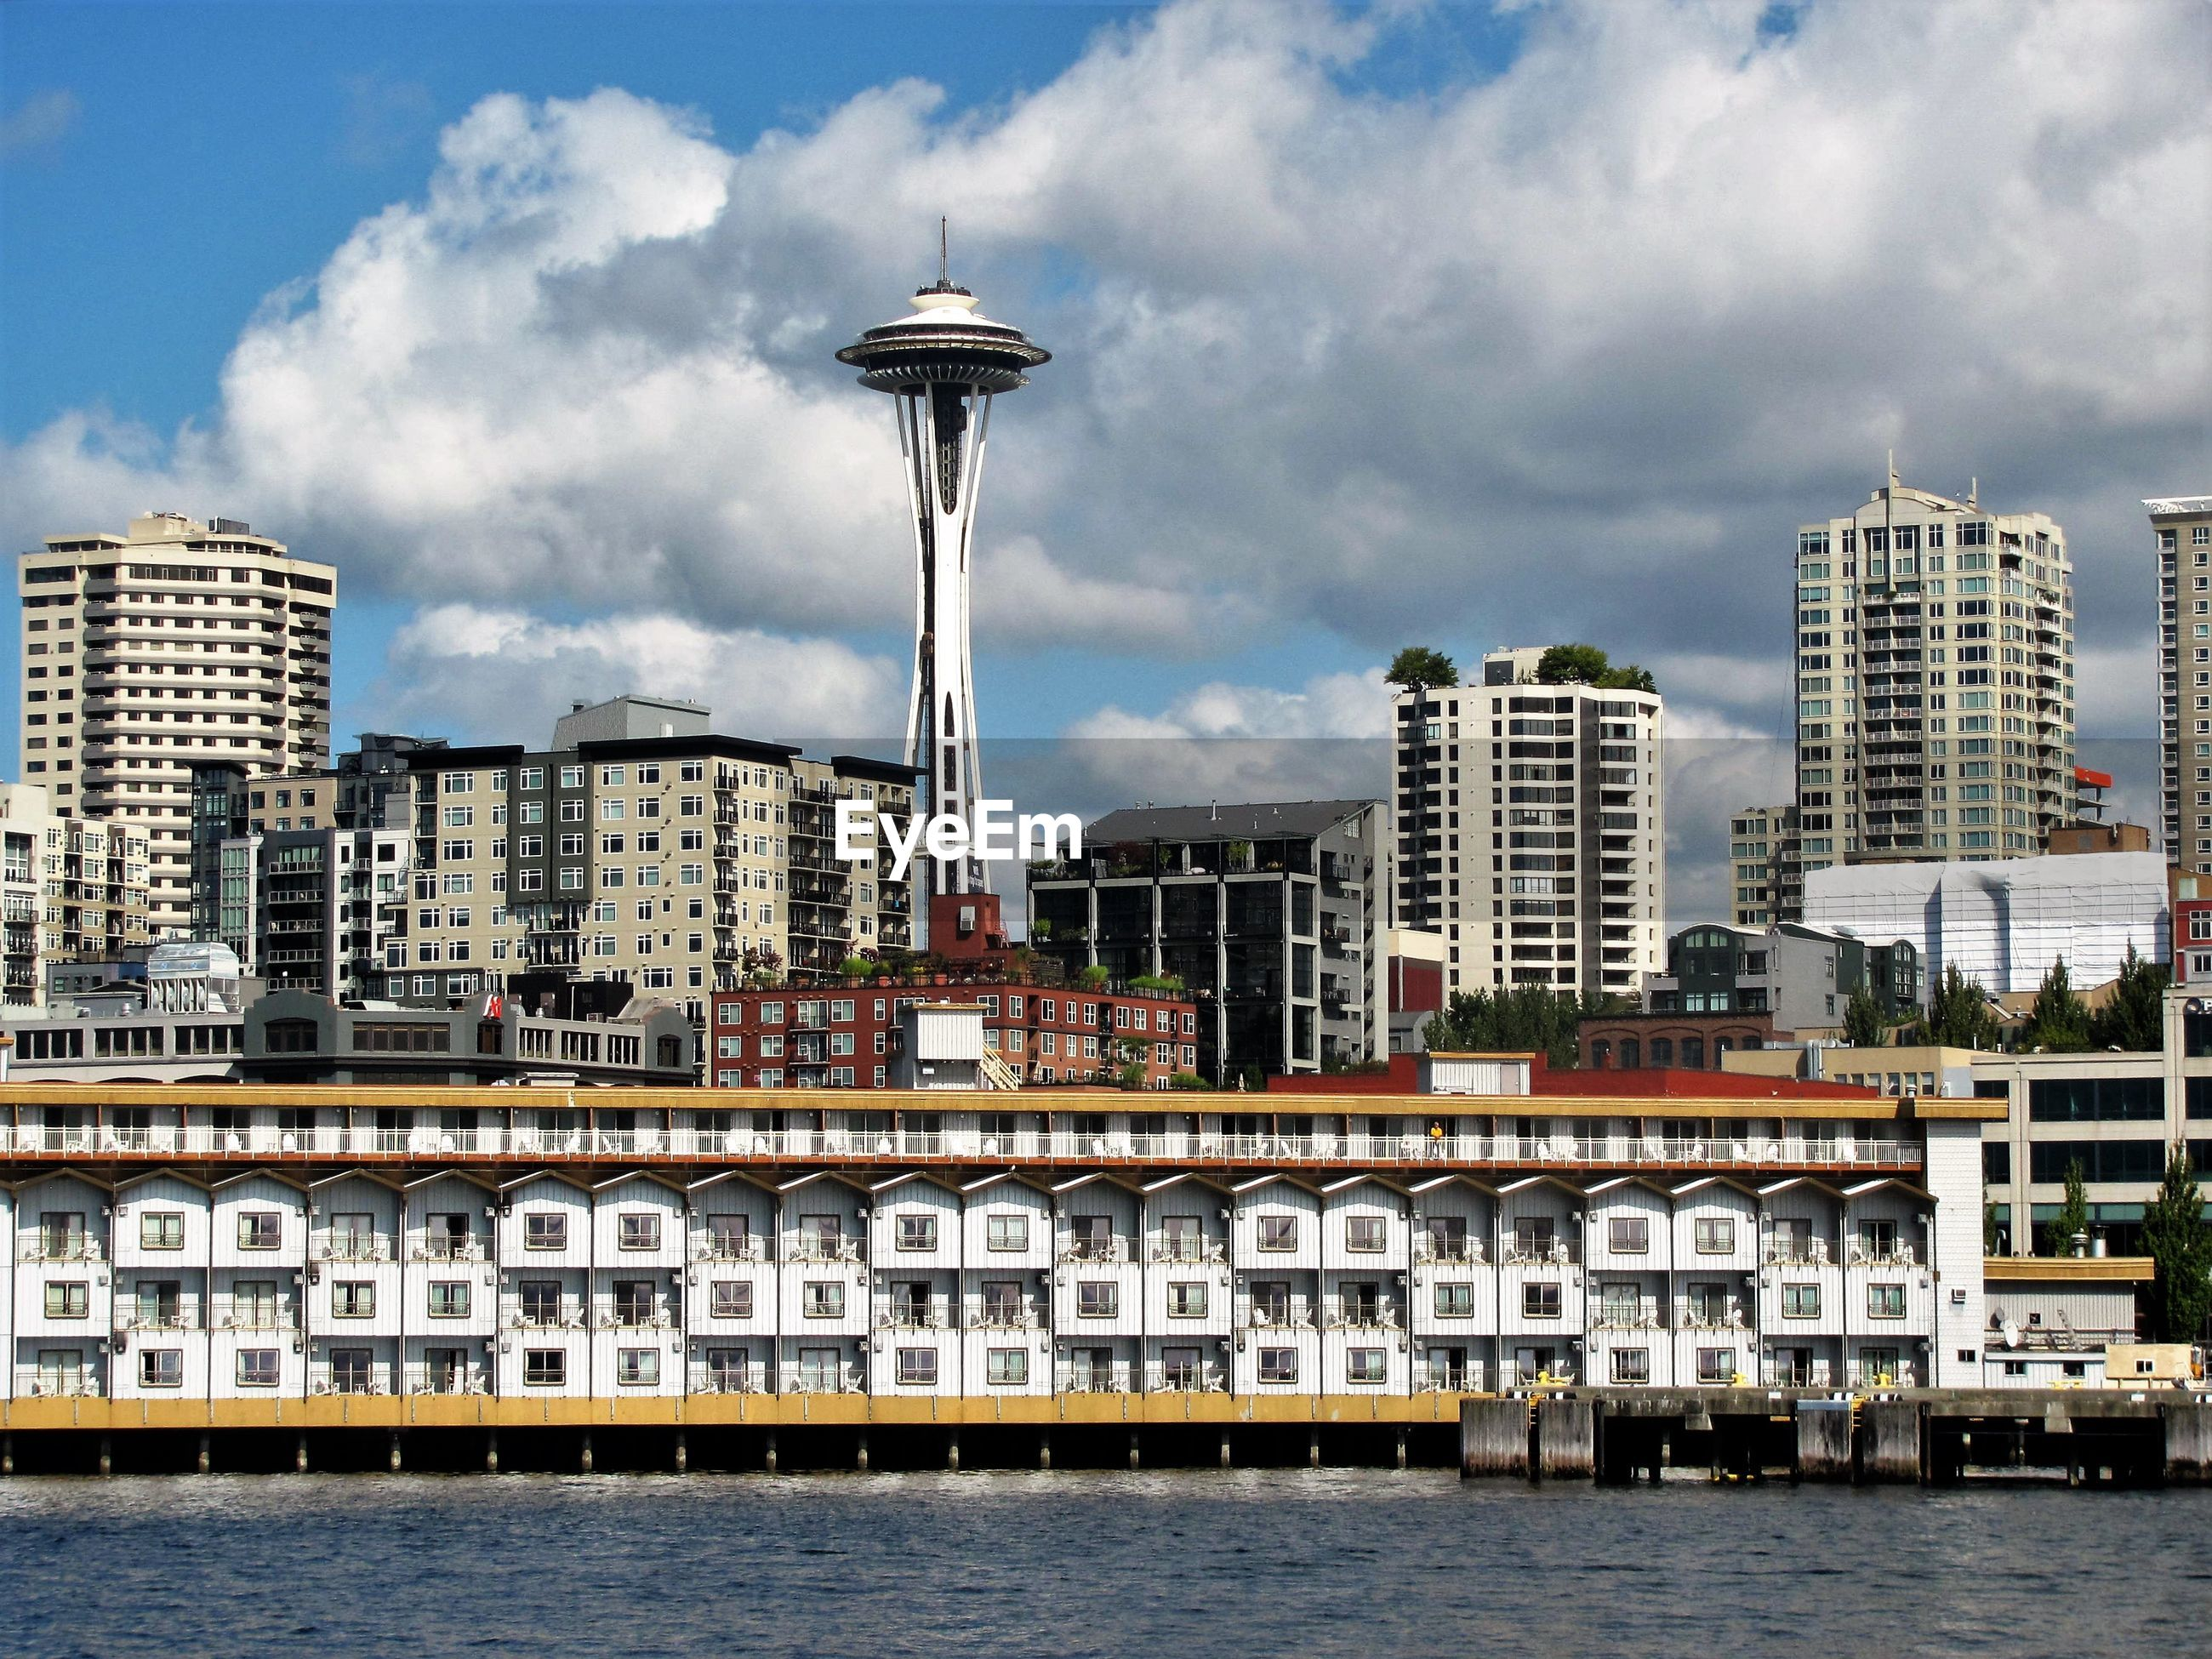 Space needle amidst buildings in front of river against cloudy sky on sunny day